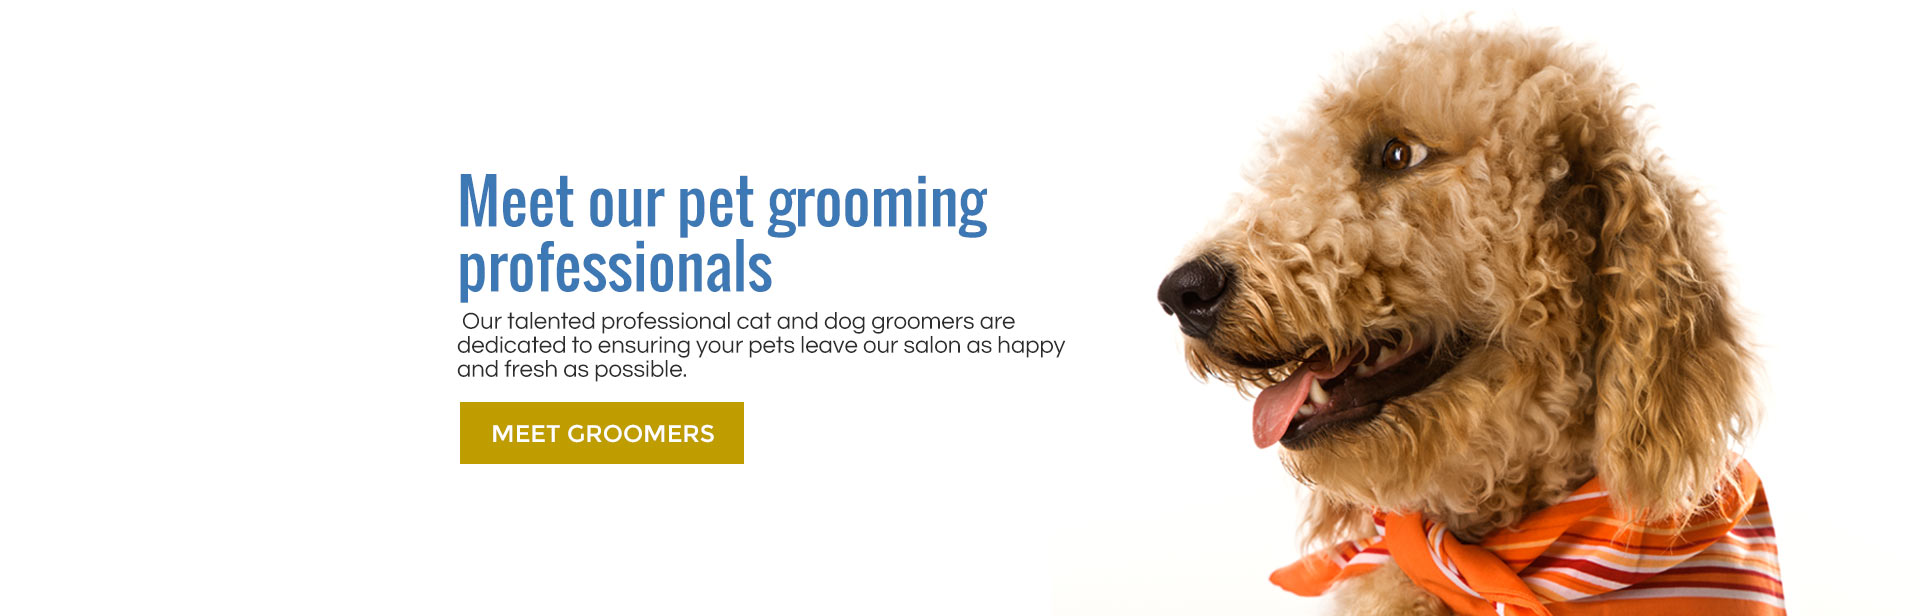 Meet our talented groomers